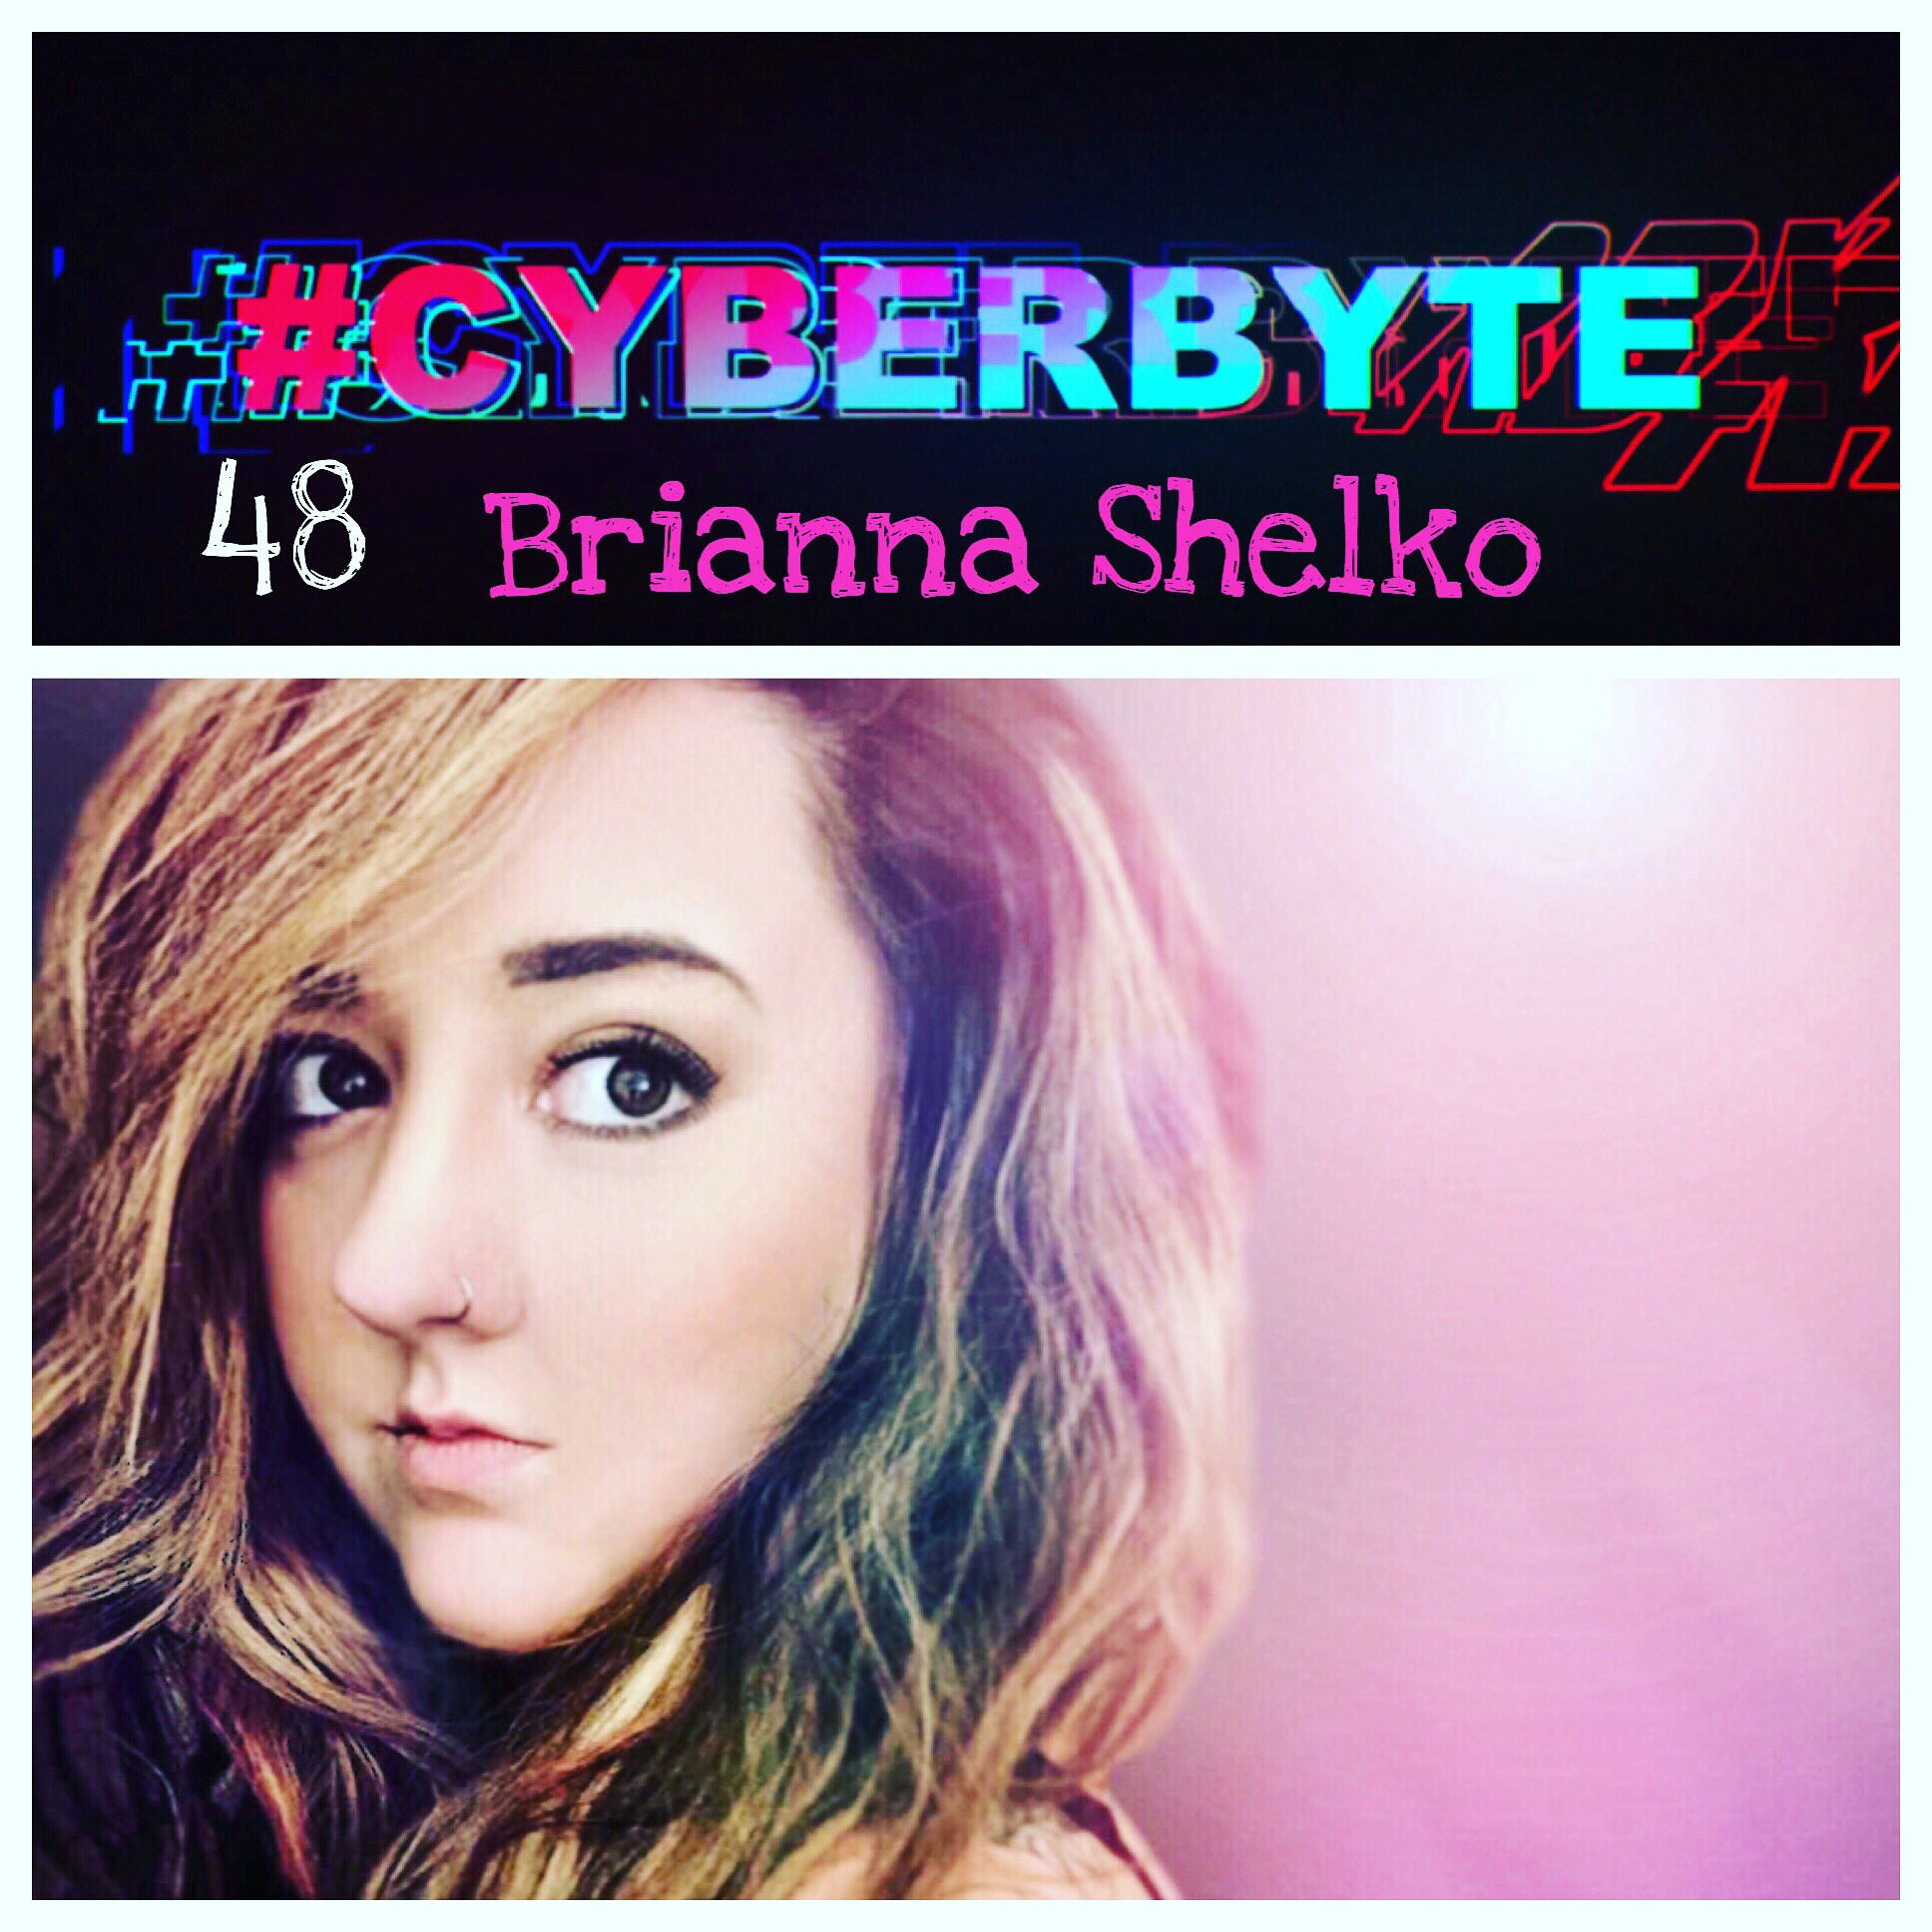 Music Industry Weekly - Brianna Shelko